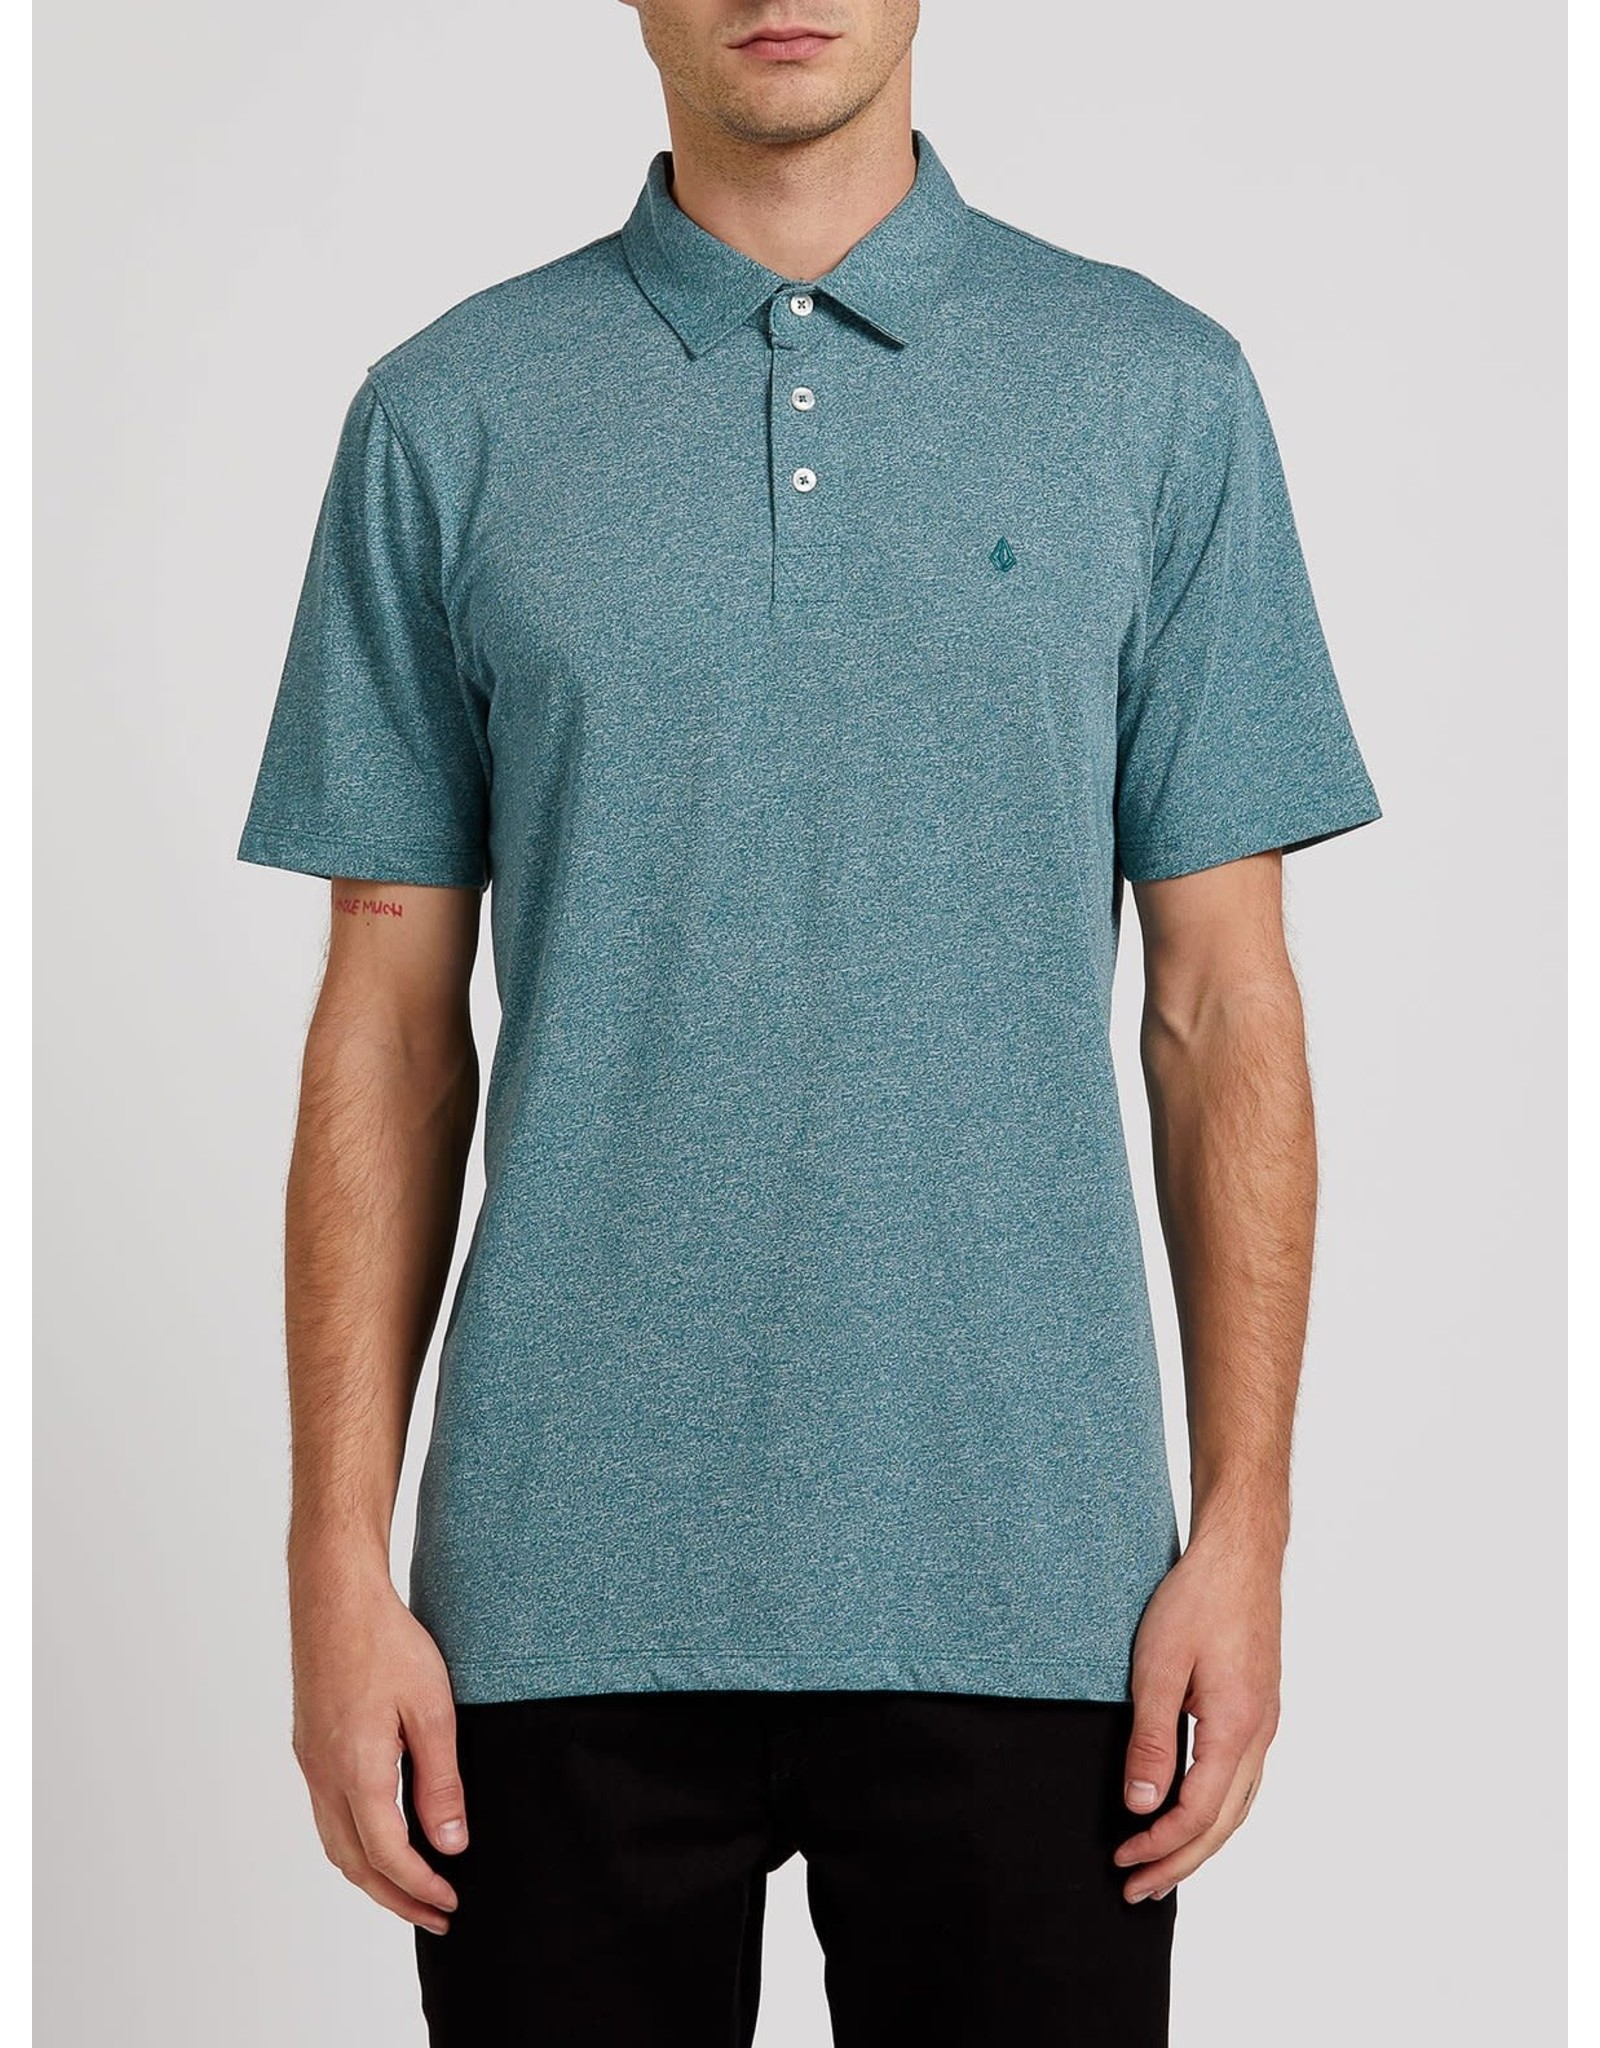 VOLCOM Men's Wowzer Polo